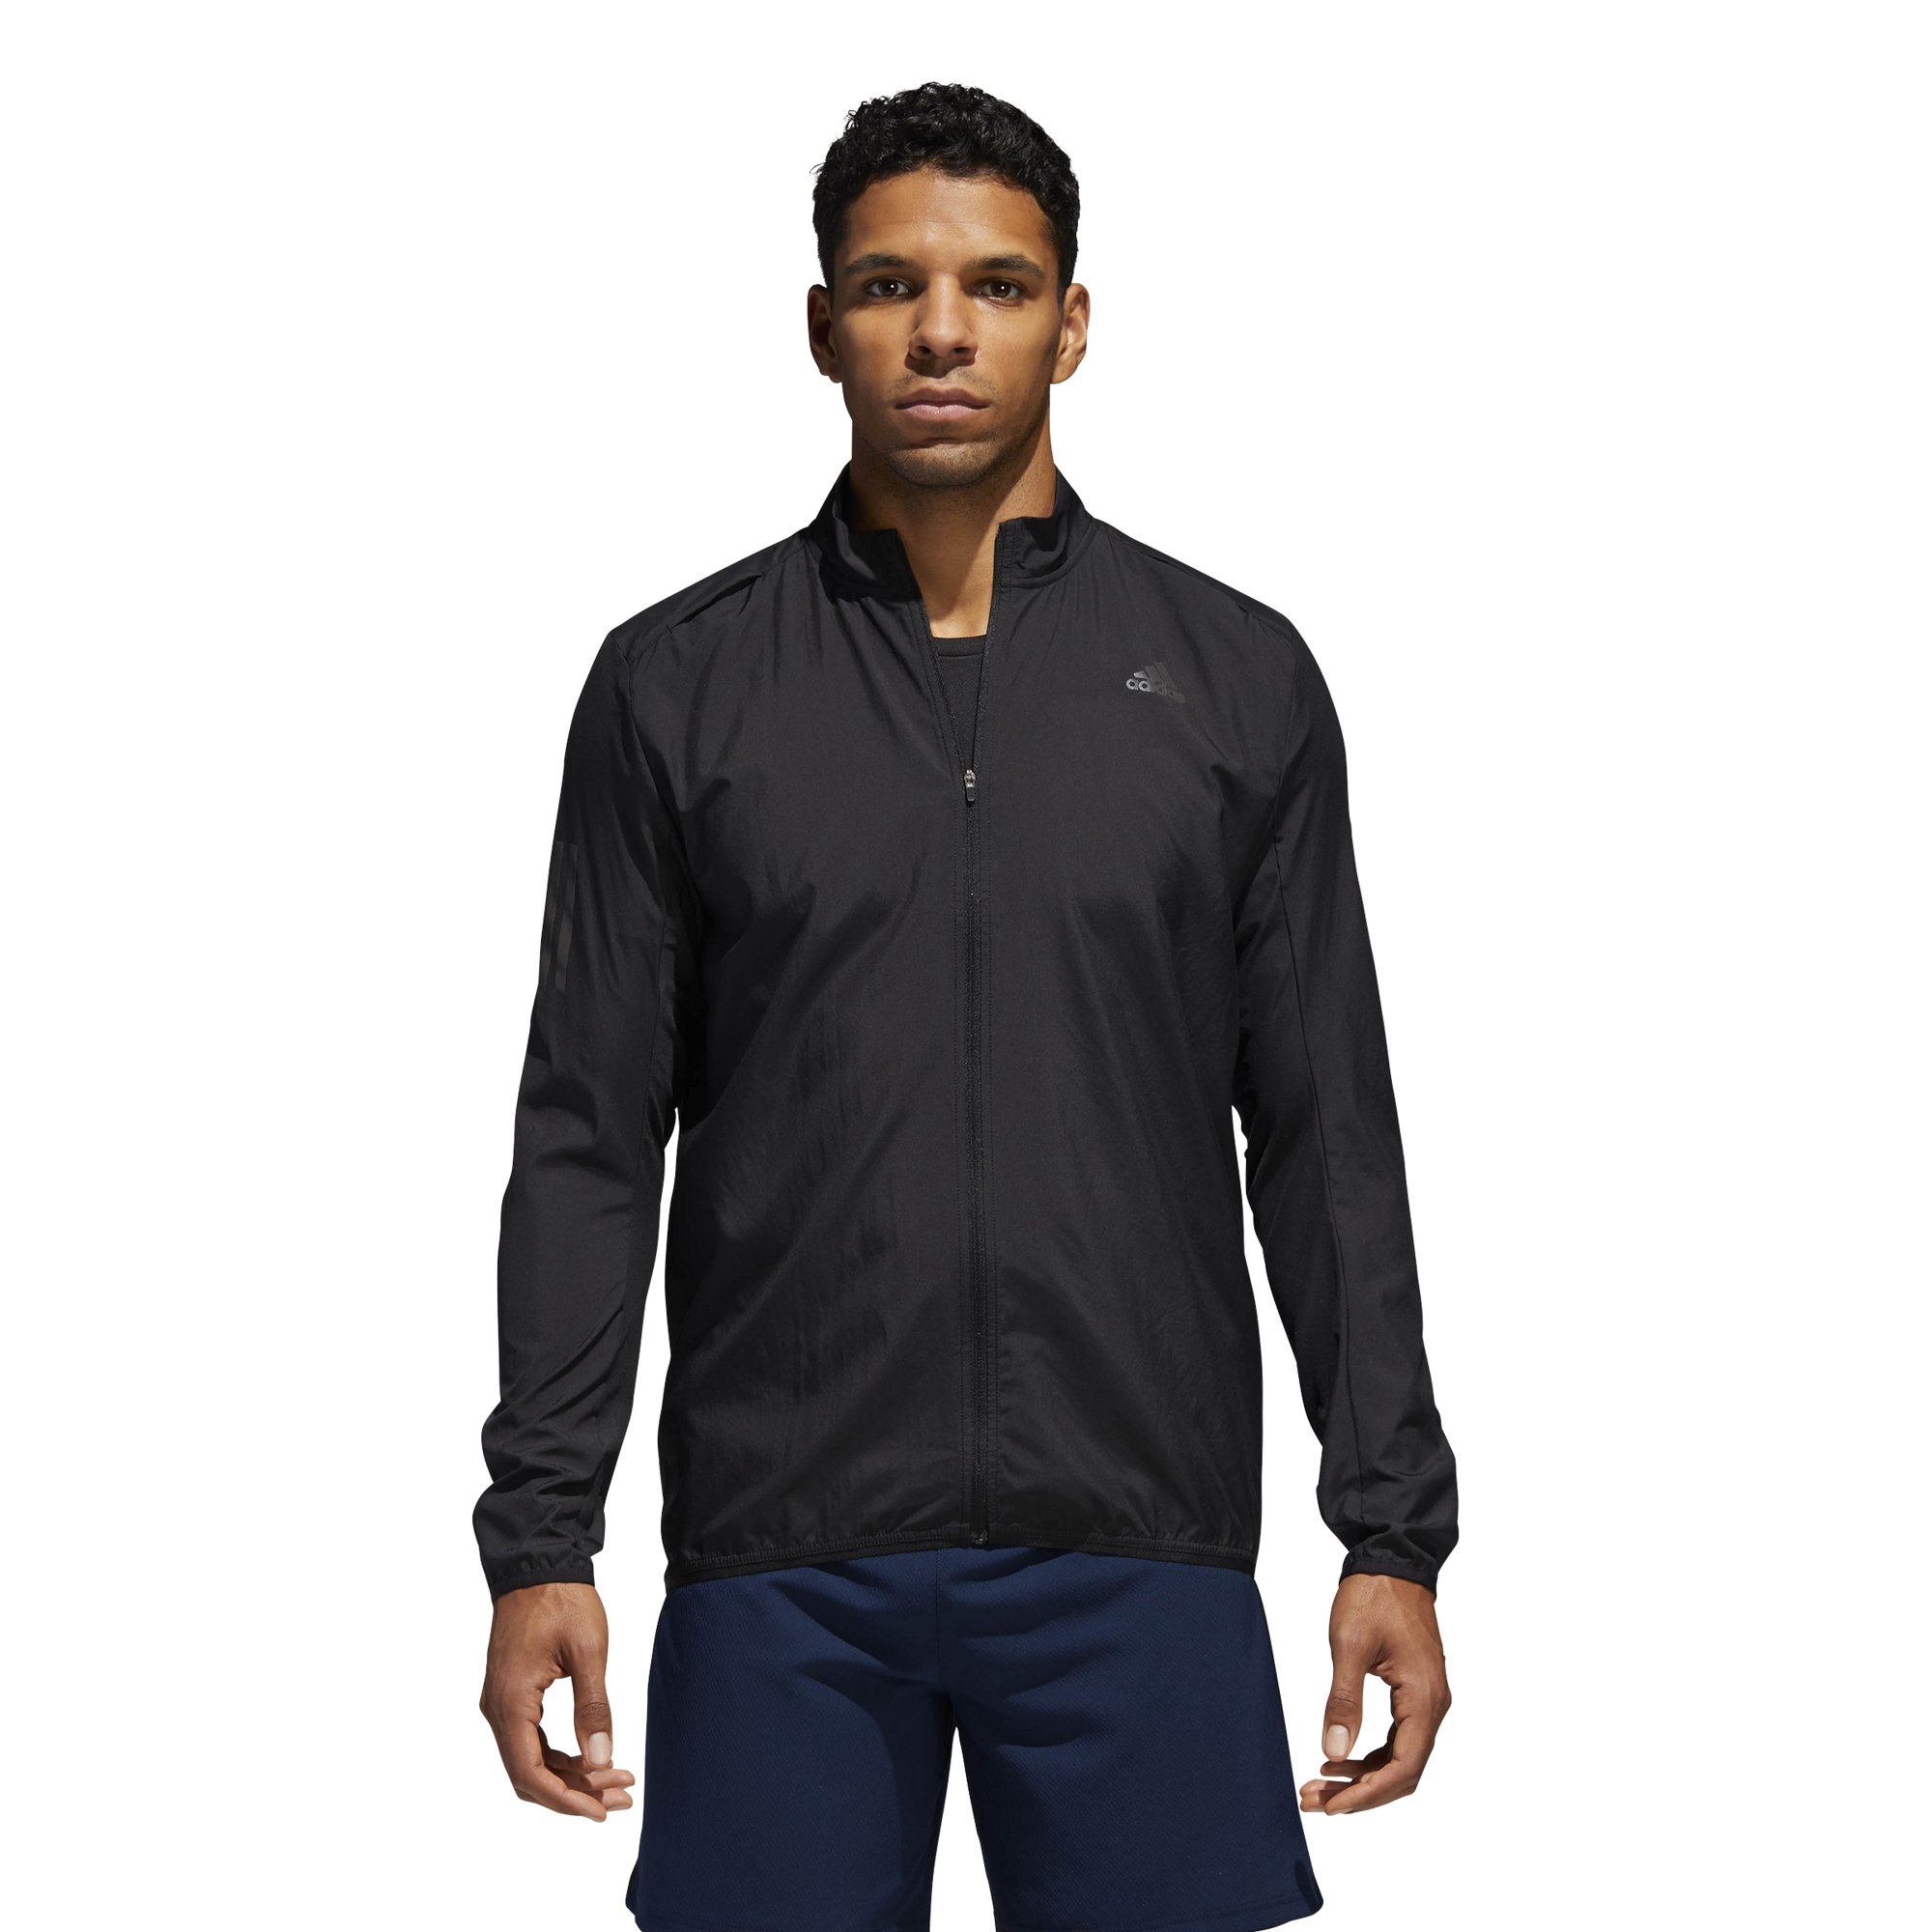 adidas Men's Running Response Wind Jacket, Black/Black, X-Large by adidas